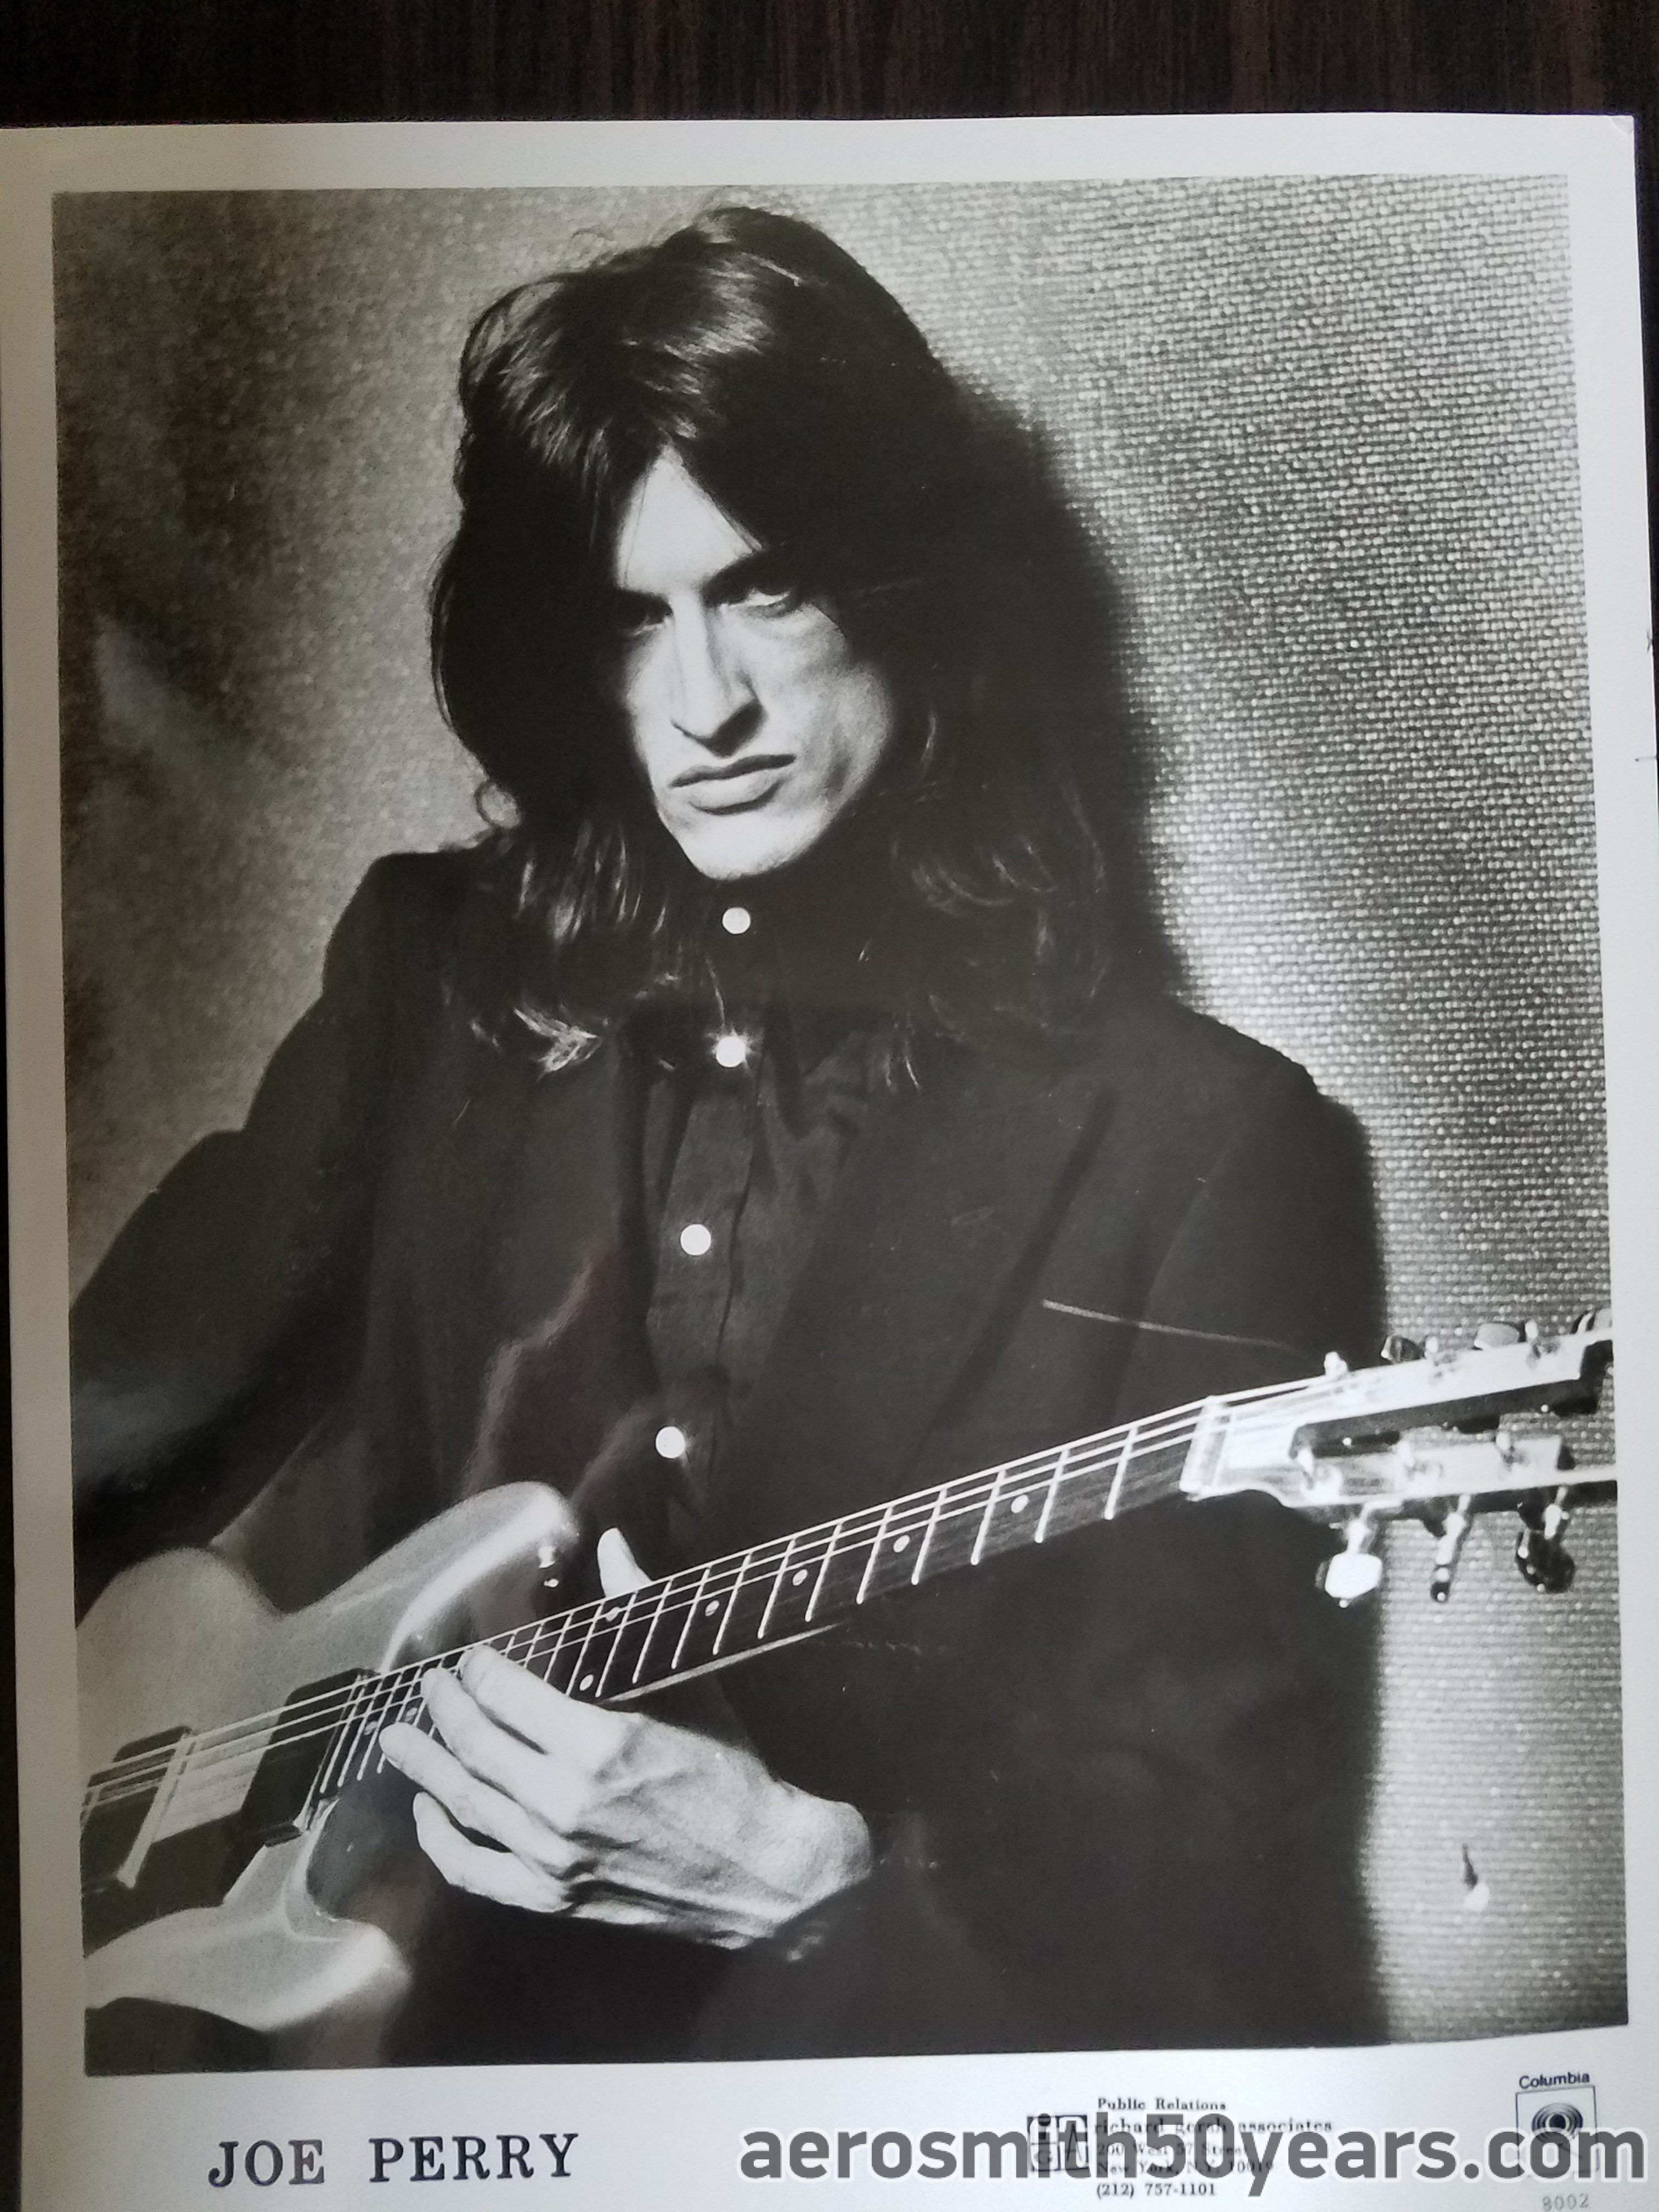 Joe Perry Project- Press Kit/Release  October 5th, 1981. This Was Sent To Brass Ring Productions For A Show Being Held In Detroit.